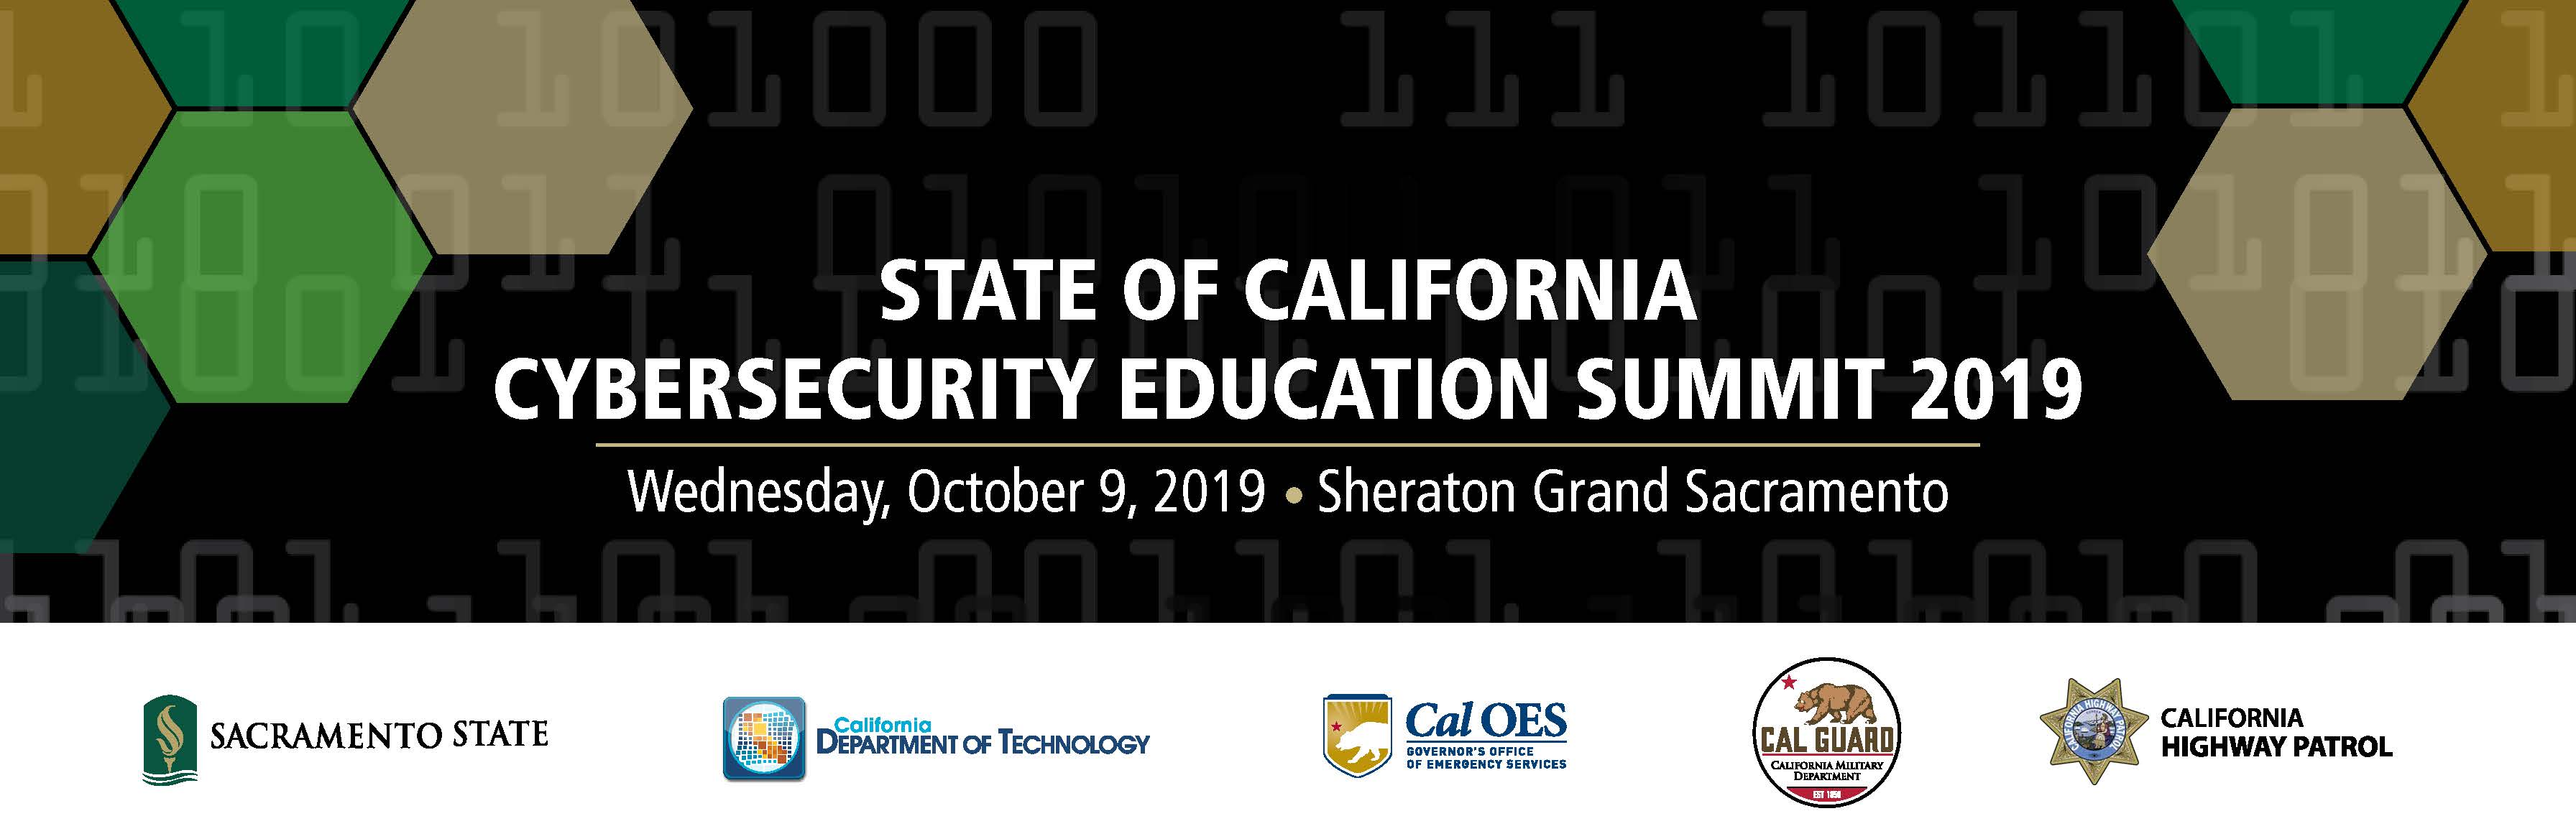 State of California Cybersecurity Education Summit 2019